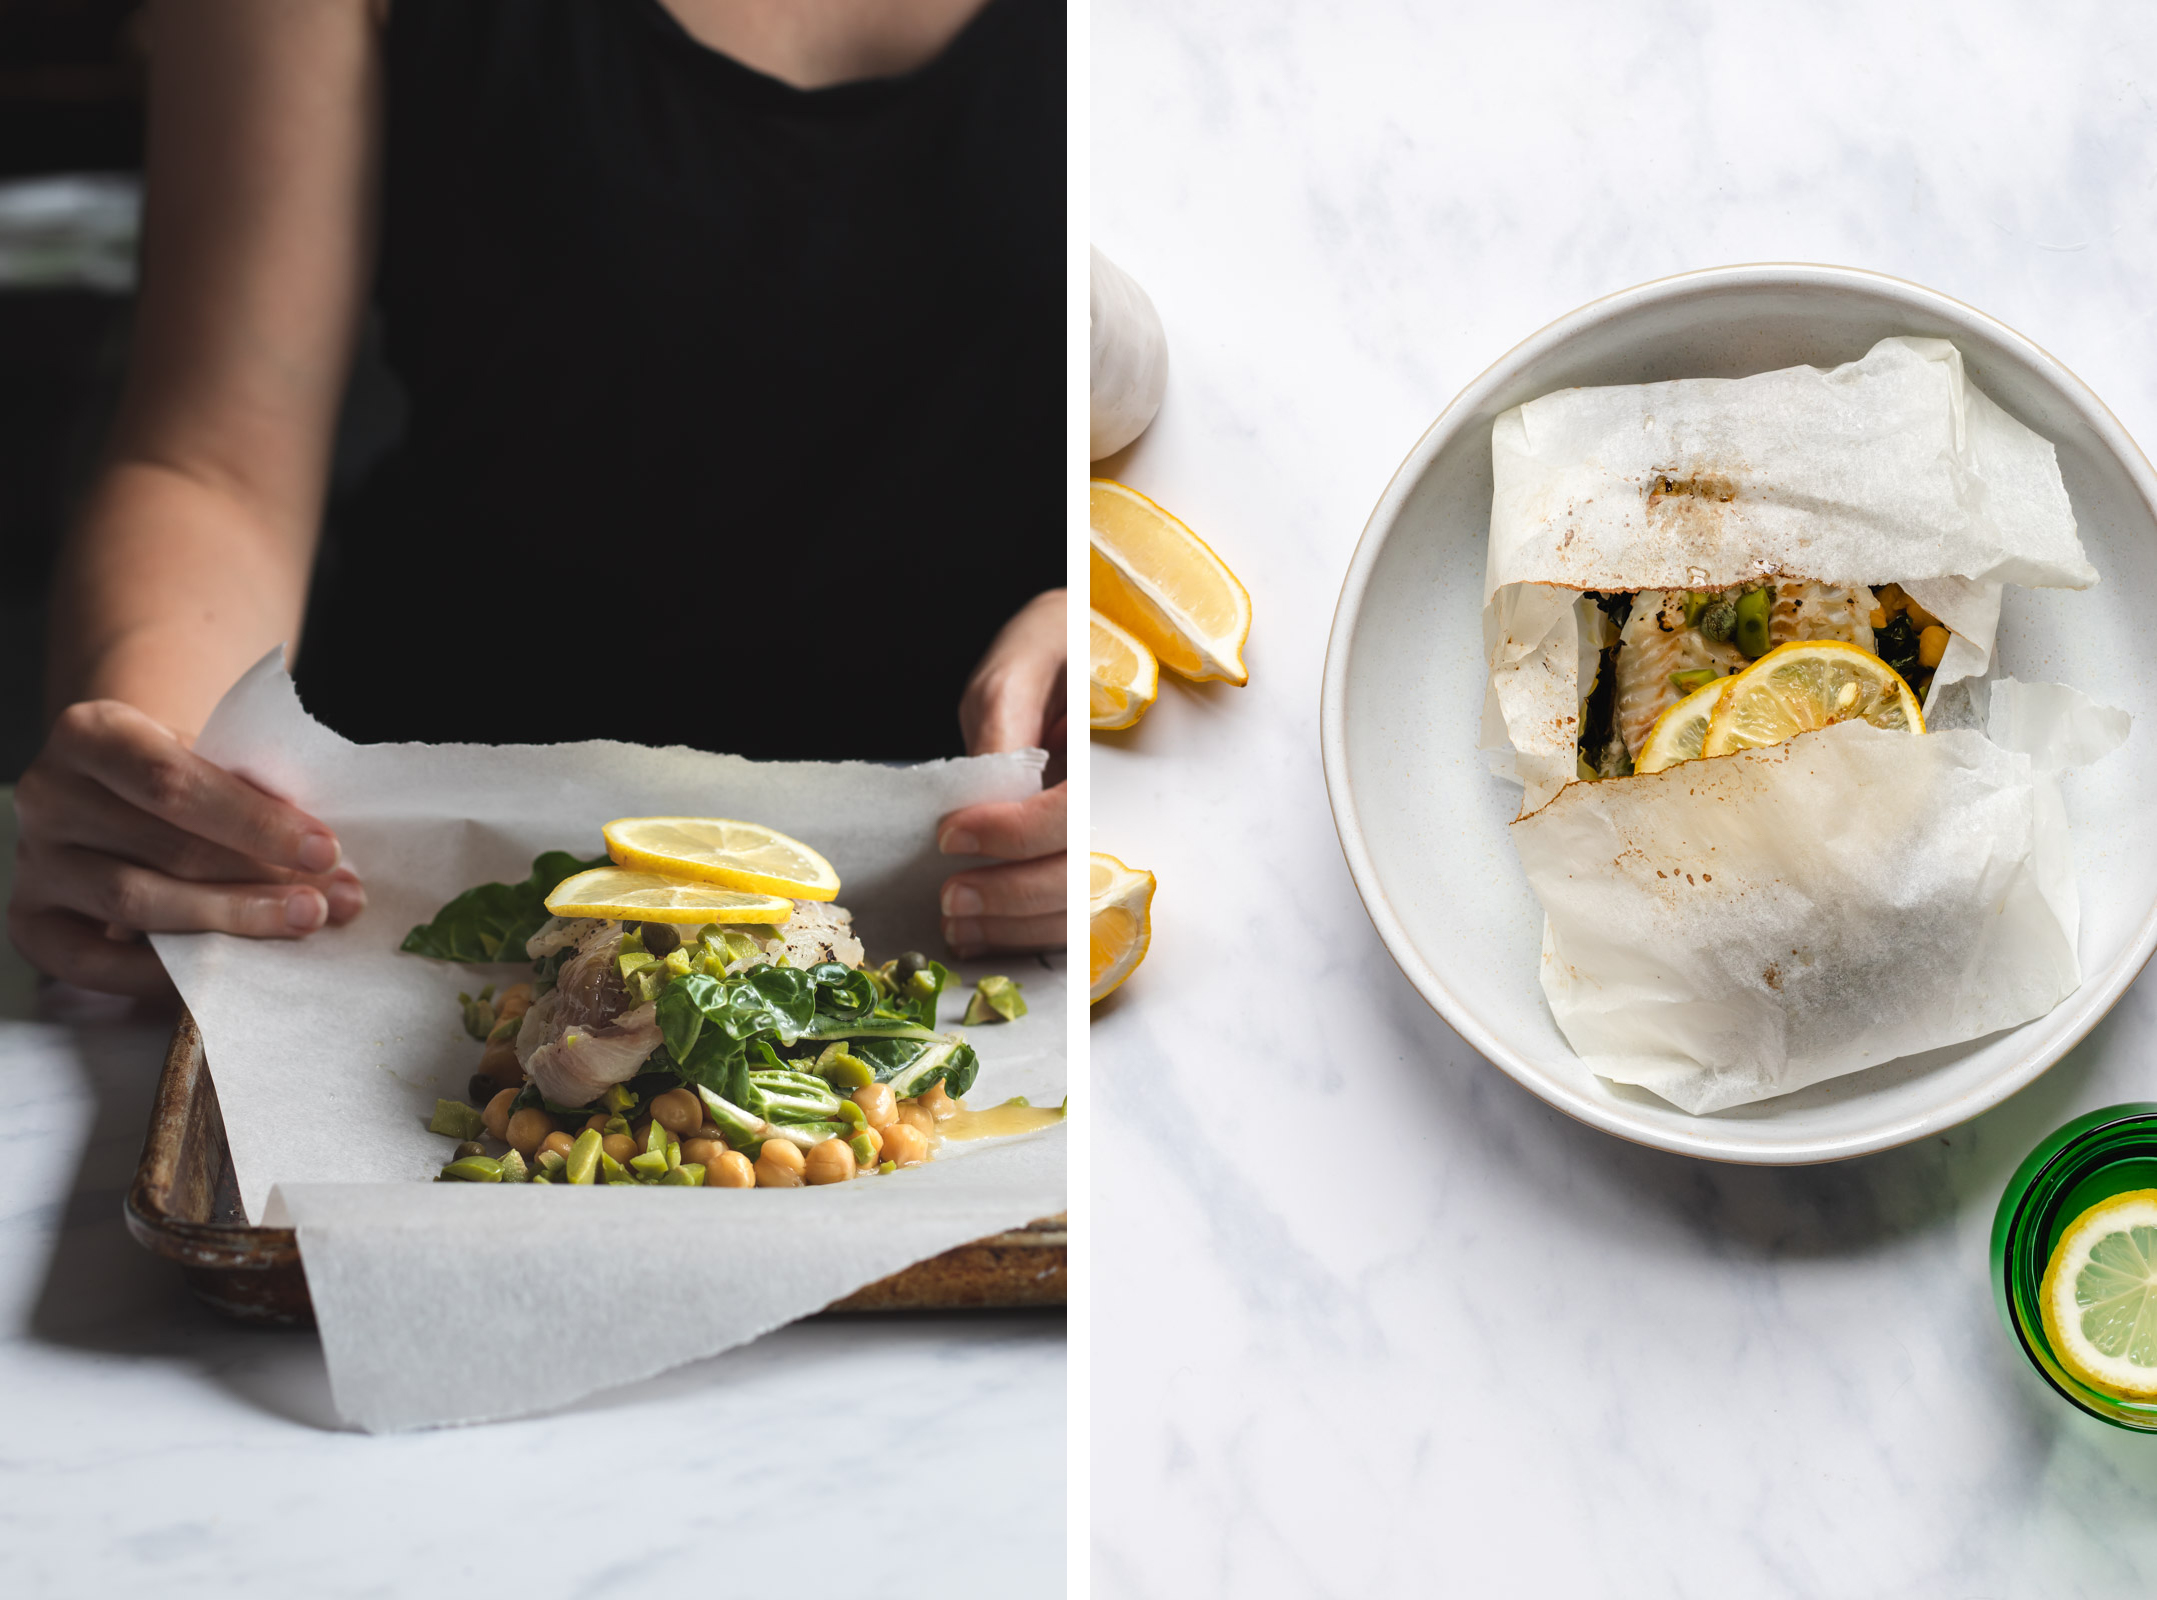 A Split image. On the left a woman wrapping a fish bundle with lemon, greens and chickpeas. The right image is the cooked package.